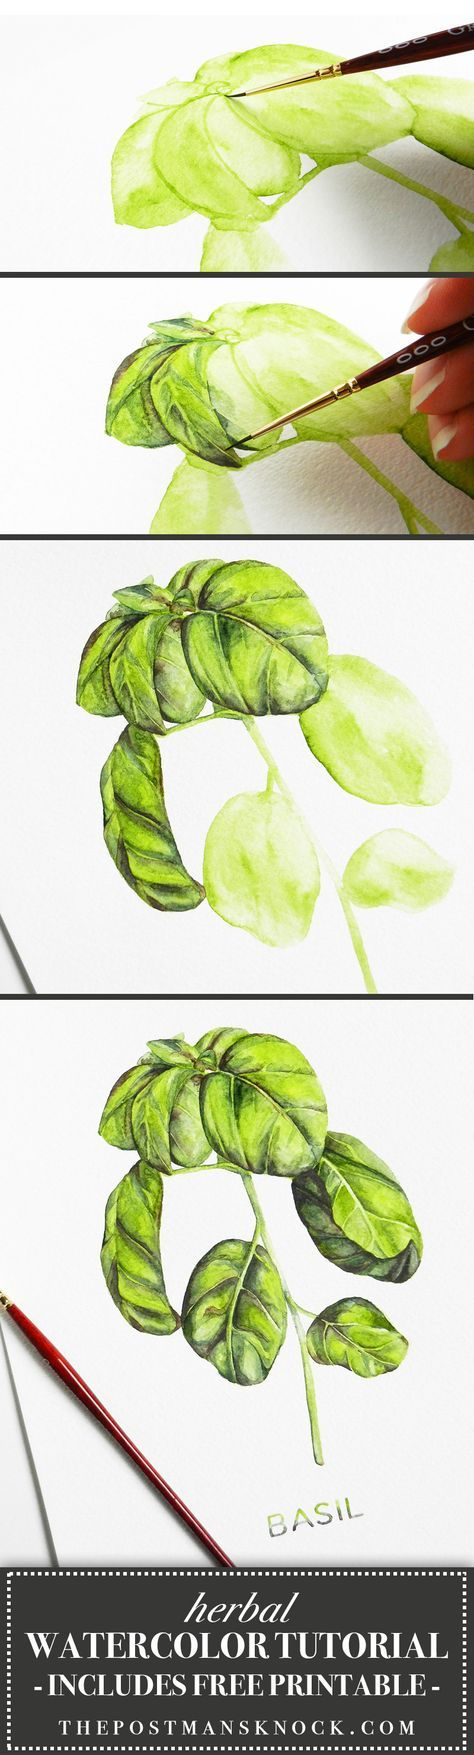 This tutorial shares two secrets for a beautiful watercolor painting: 1. Use a light box, and 2. Shade with purple, not black!